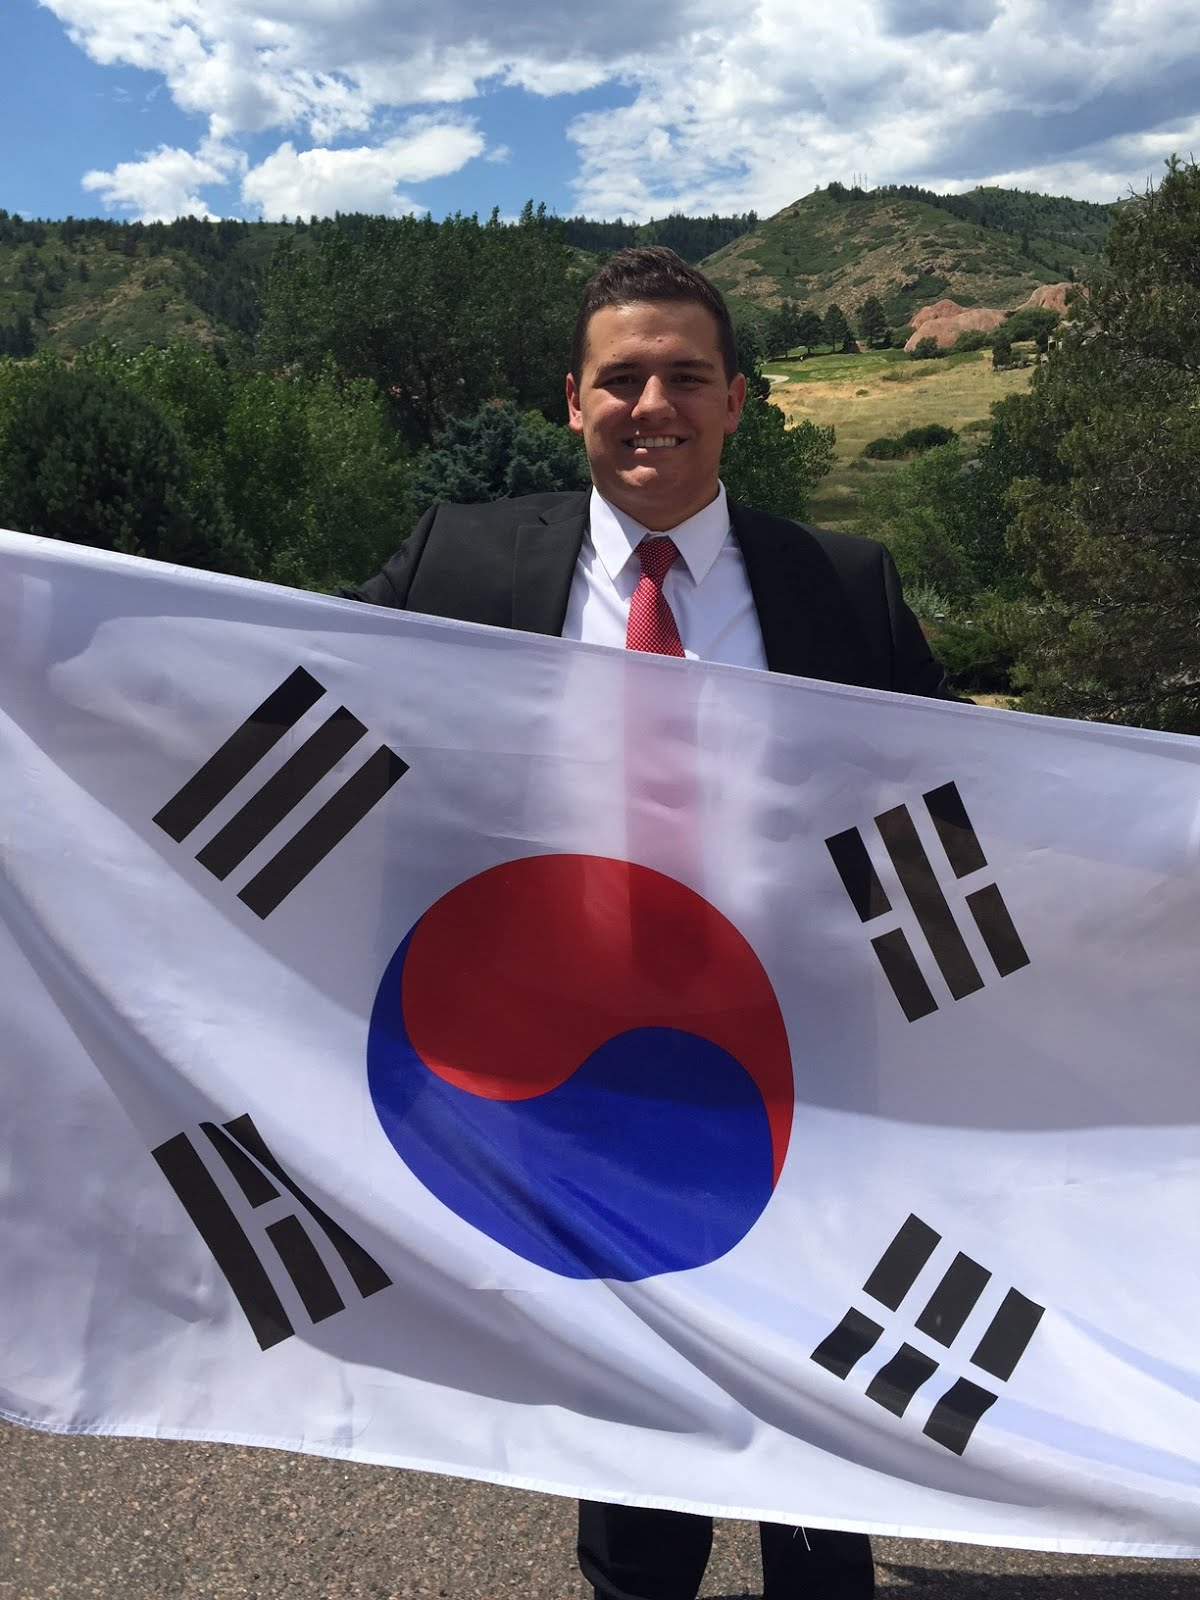 Elder Zachary Burridge